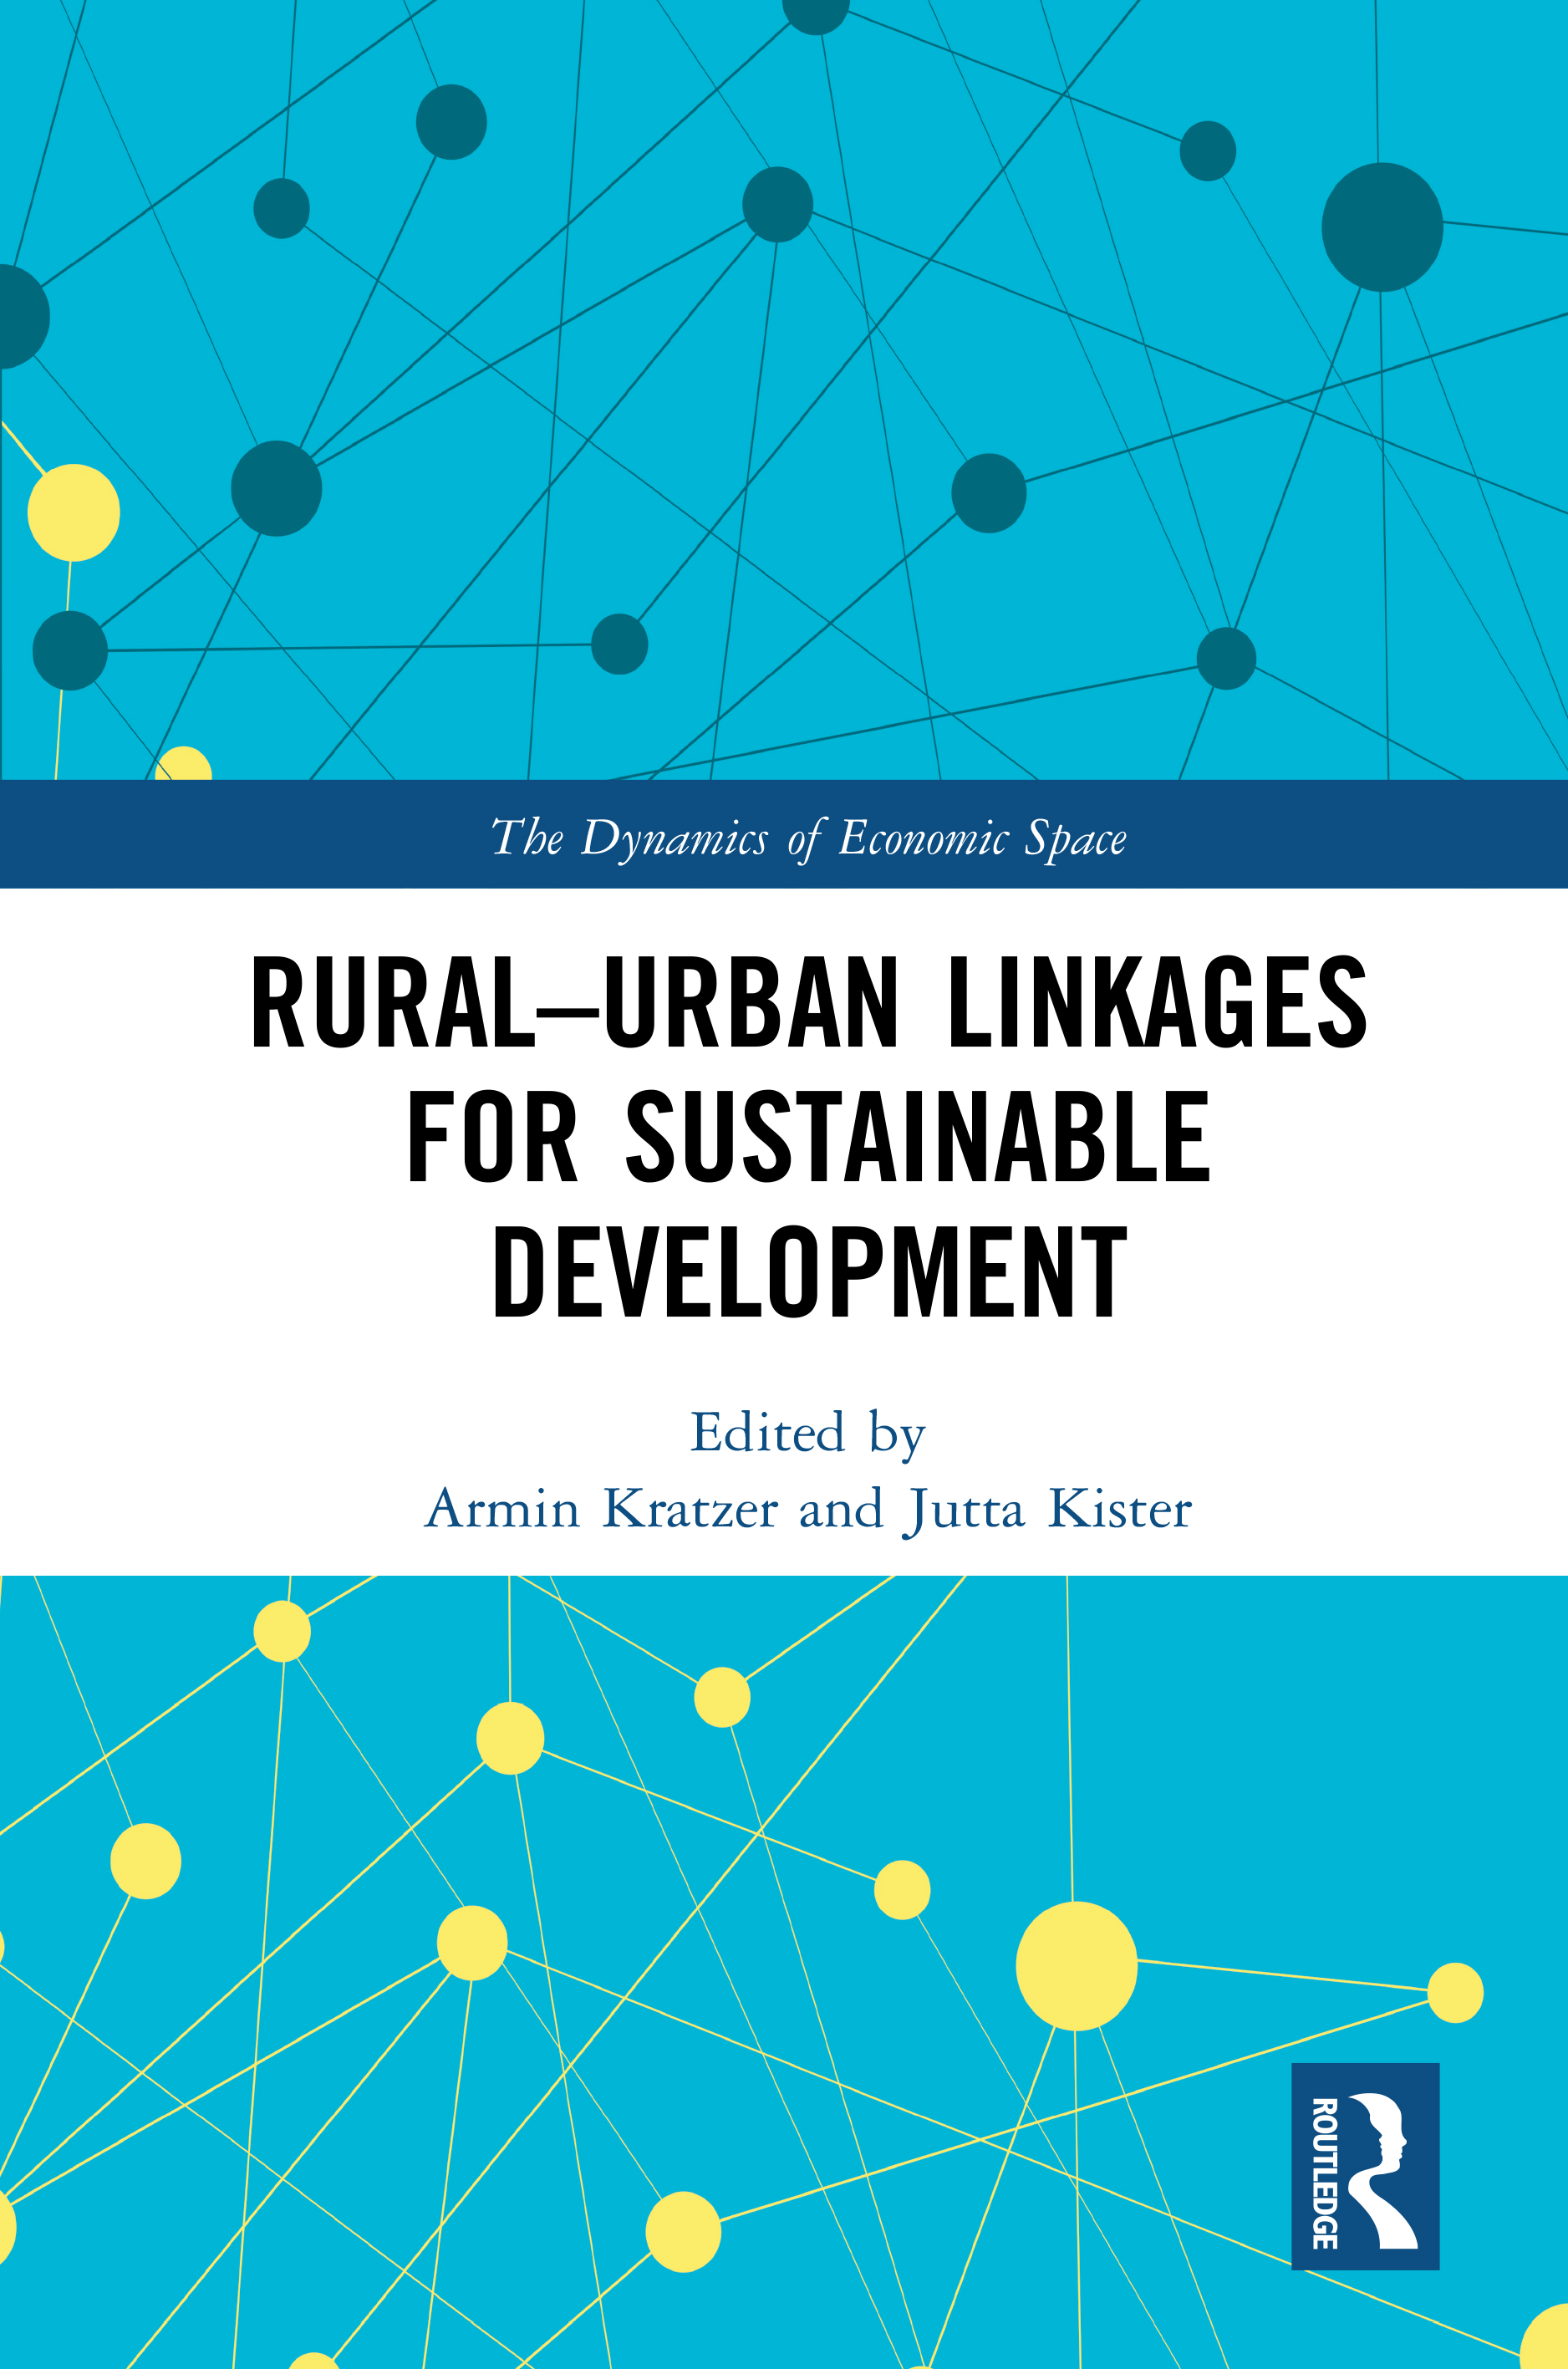 Agribusiness and rural–urban linkages